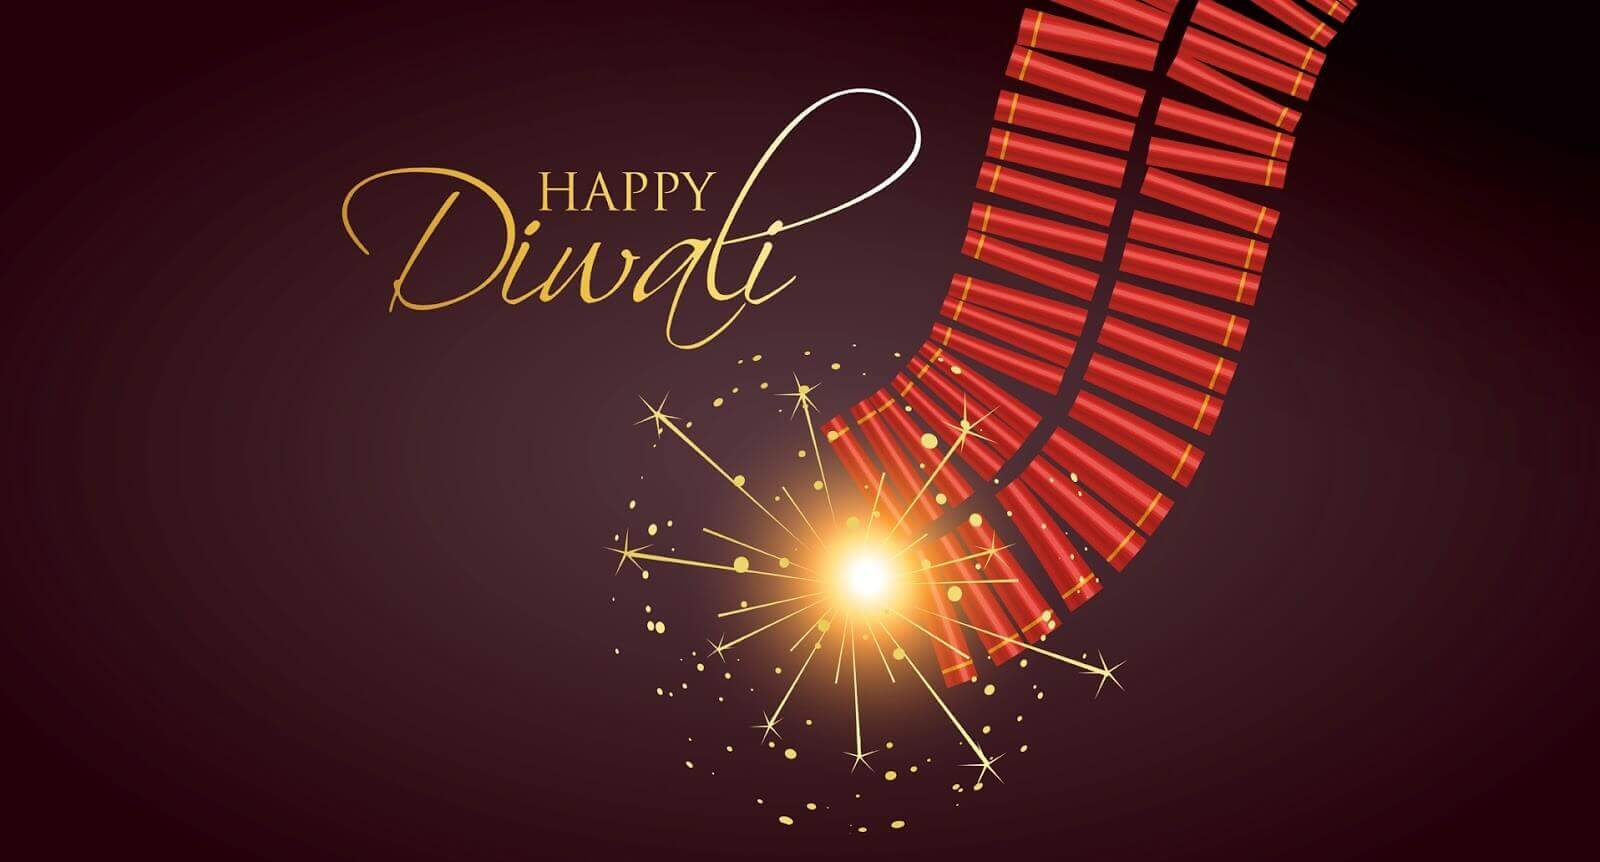 happpy diwali wishes crackers wala hd wallpaper